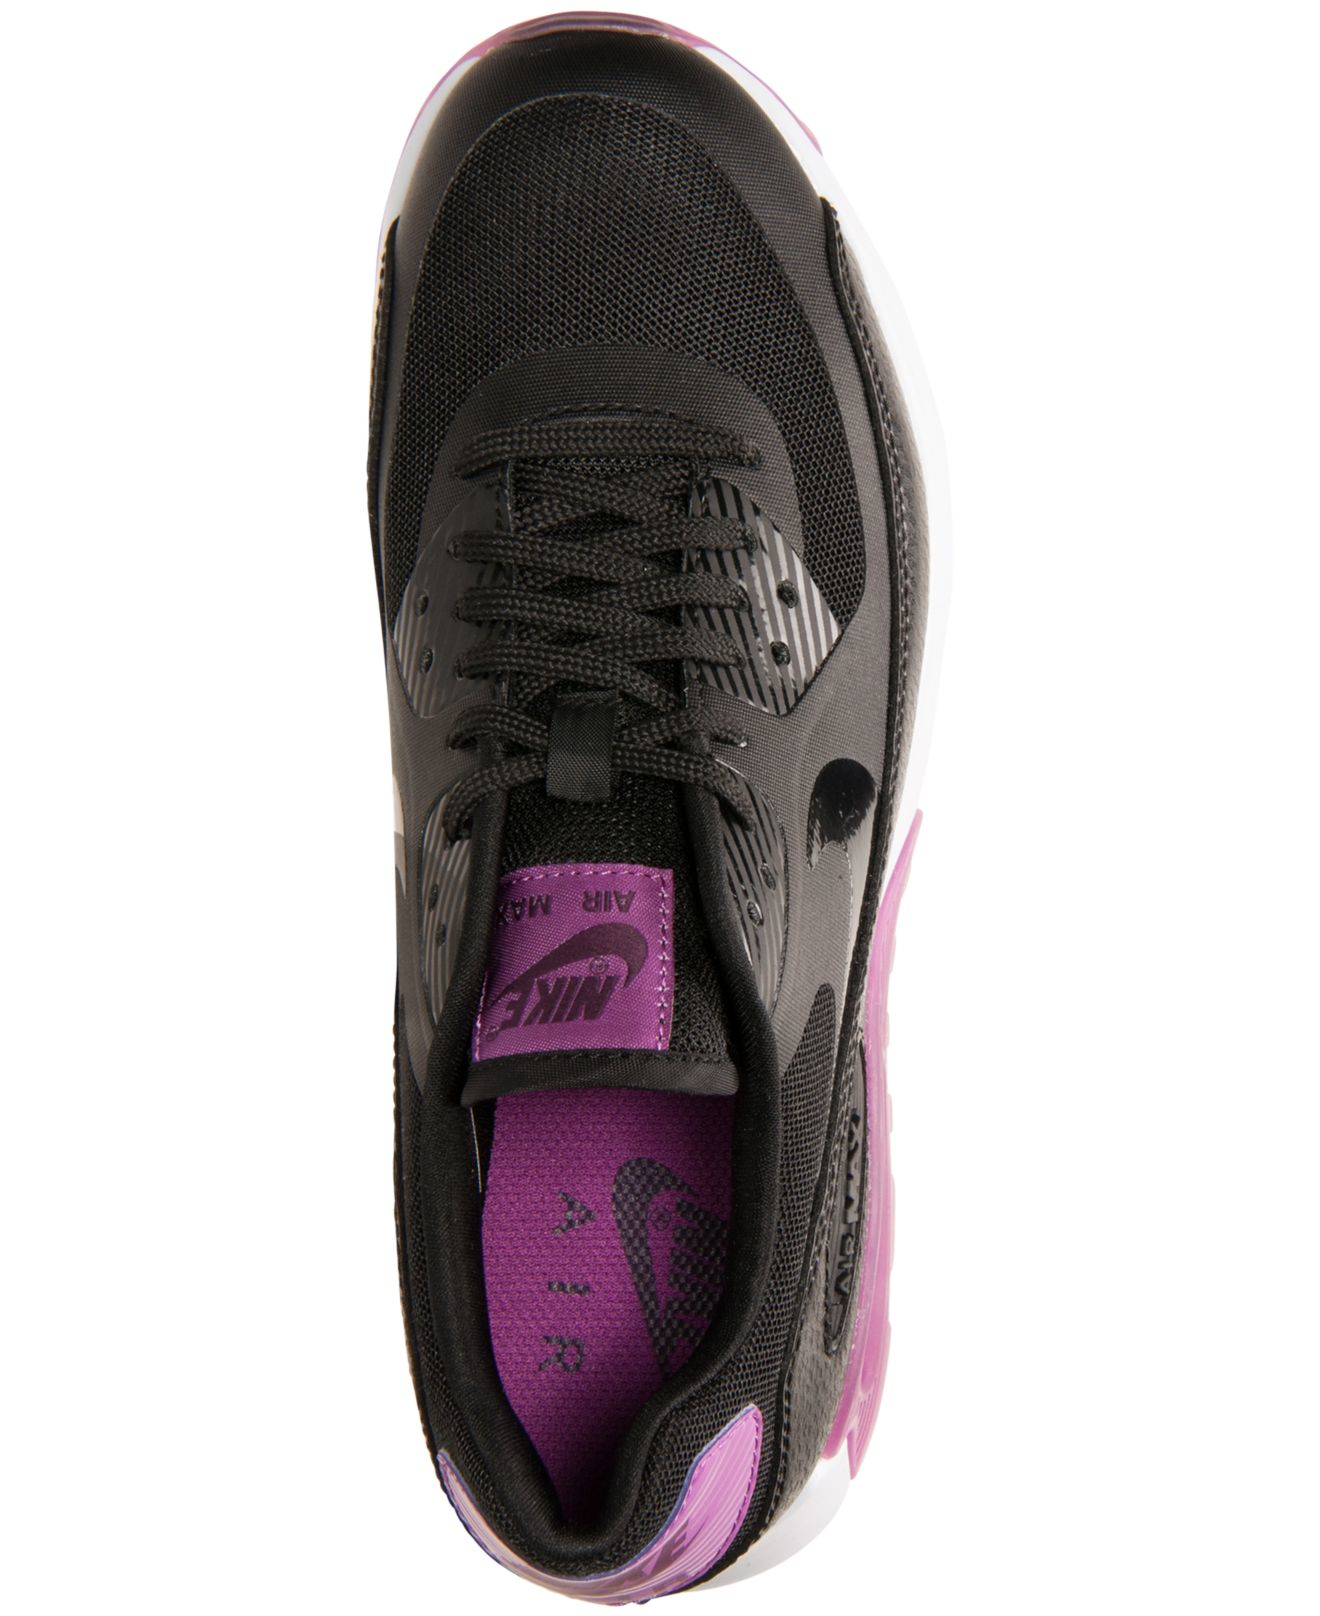 b9420f512d7 ... clearance gallery. previously sold at macys womens nike air max 90  2bf09 21232